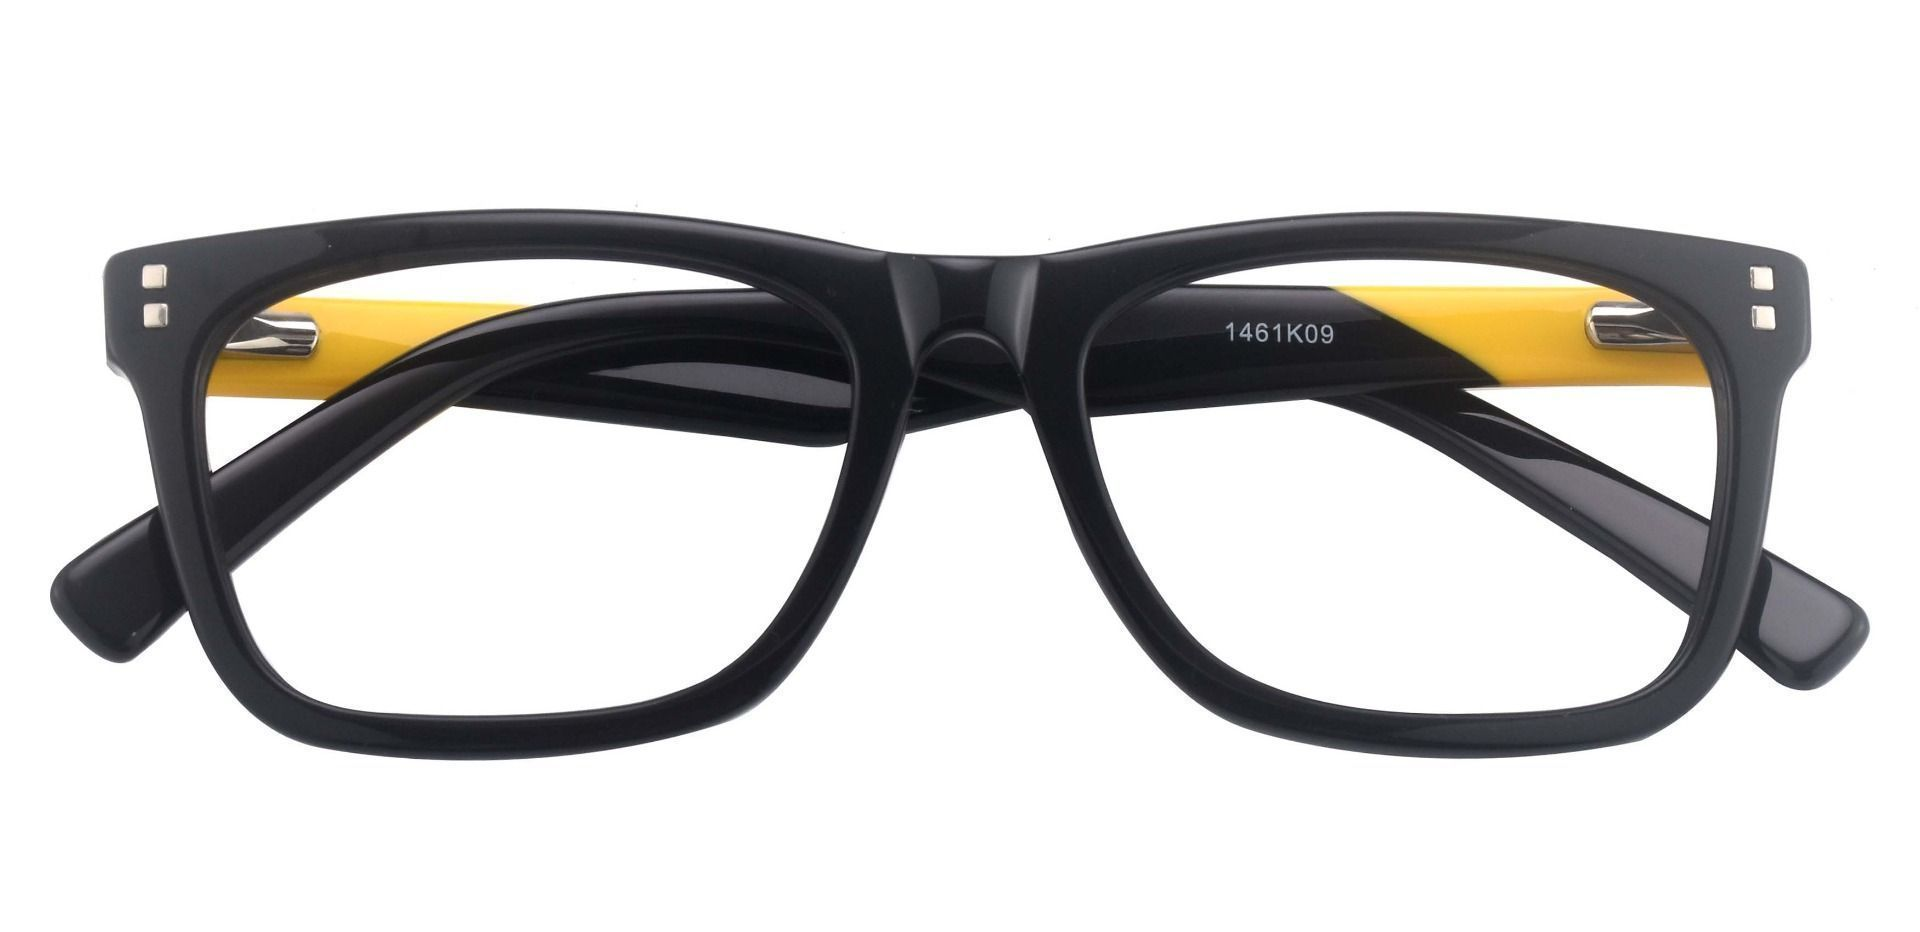 Blitz Rectangle Prescription Glasses - The Frame Is Black And Yellow